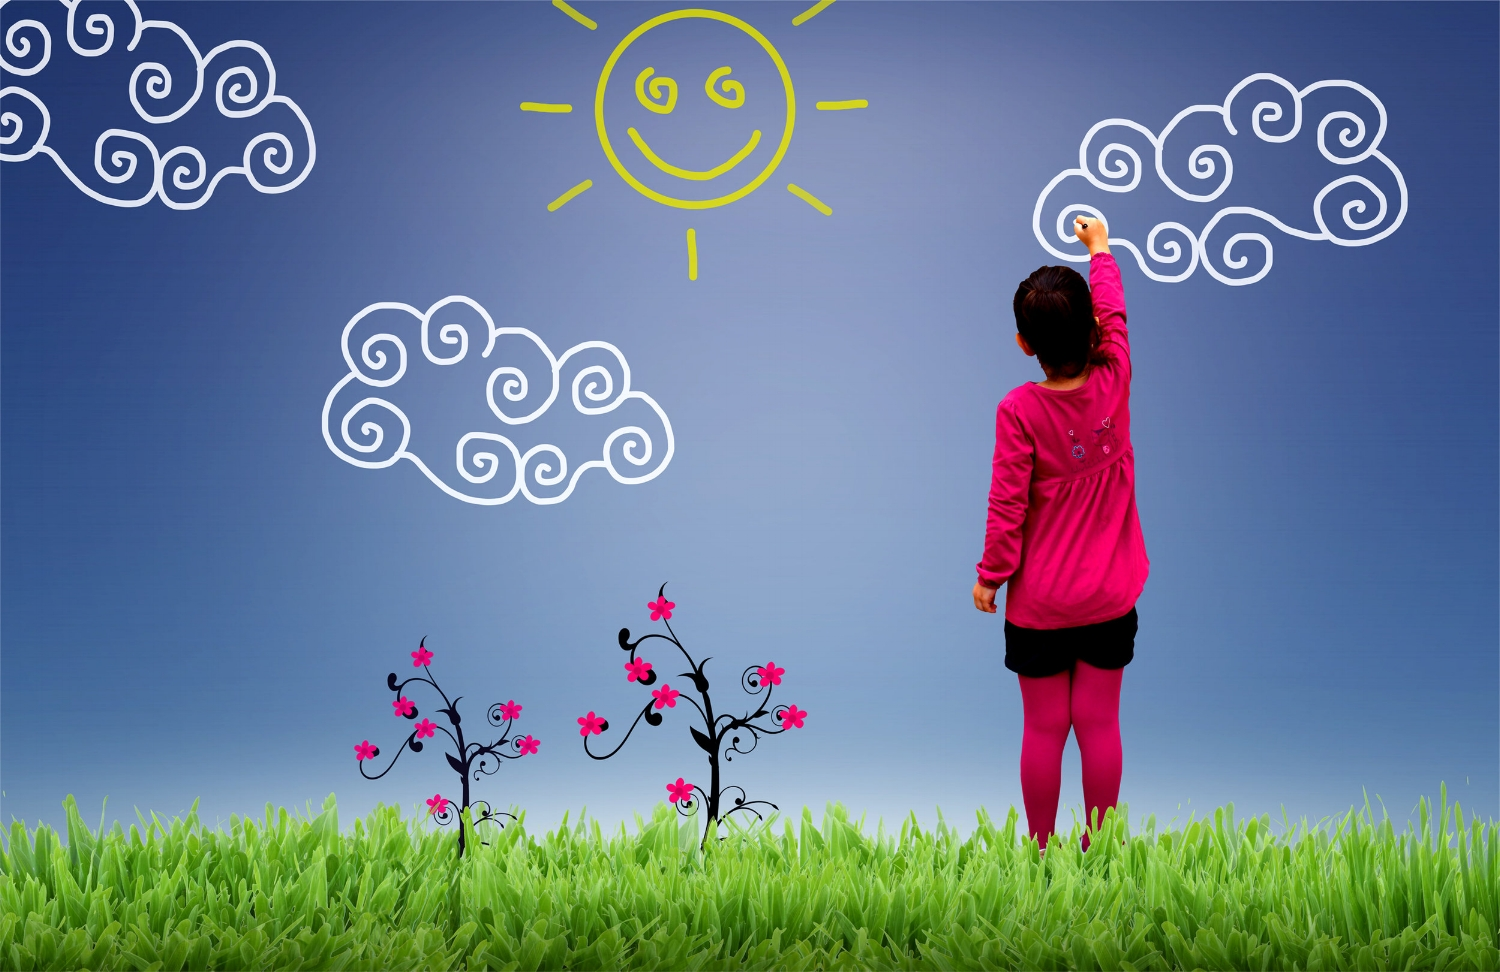 stockvault--little-girl-painting-the-sky---child-joy-and-happiness-concept181000.jpg